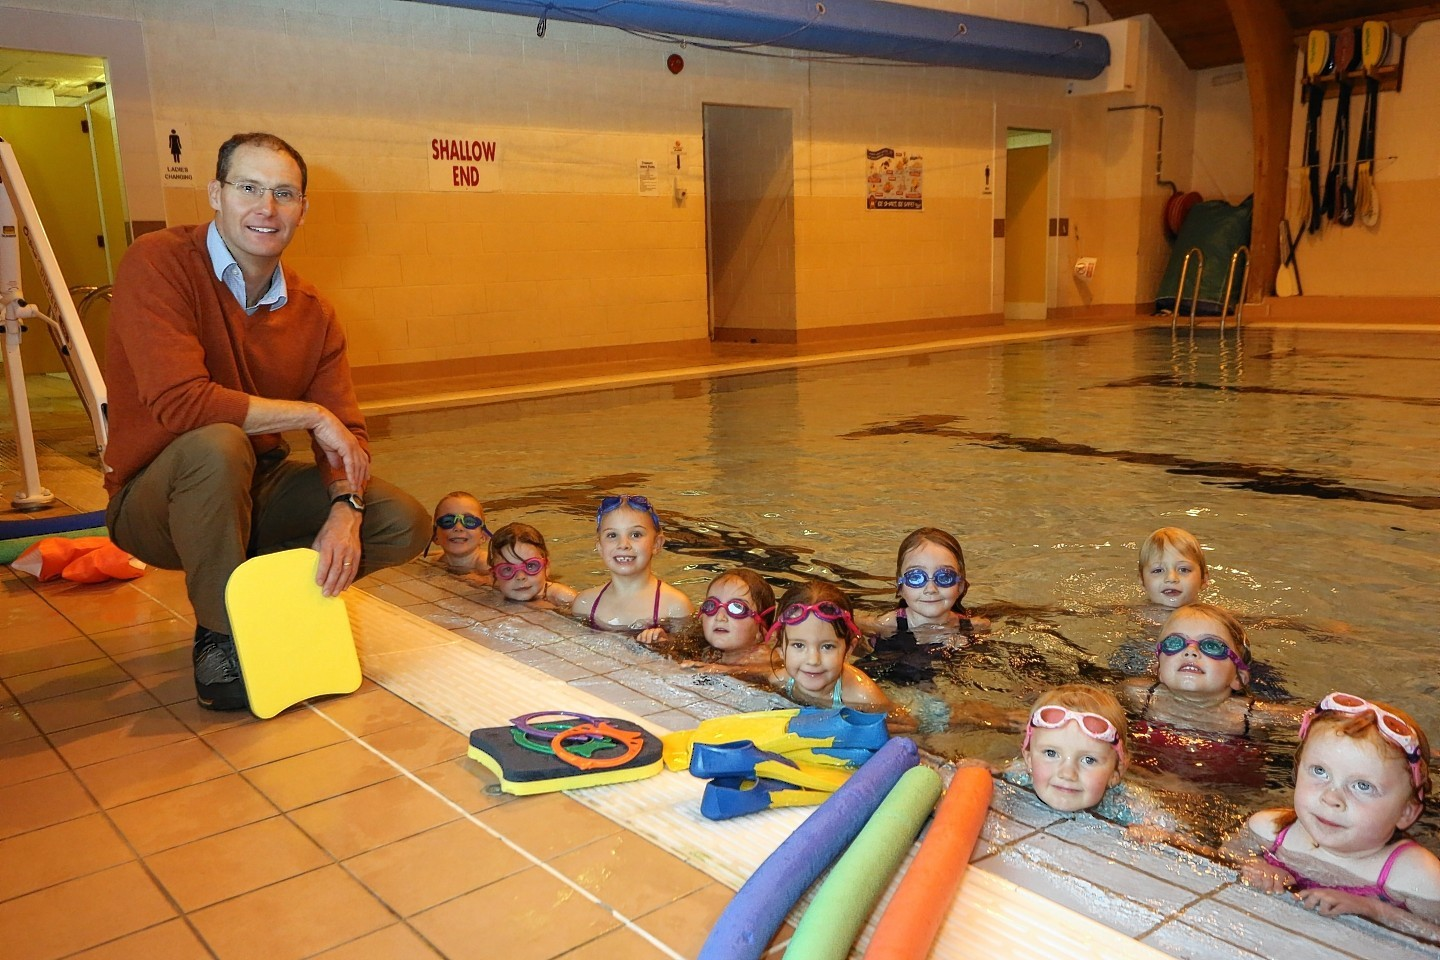 Pool manager Brian O'Rourke with children taking part in a swimming lesson at Mallaig swimming pool